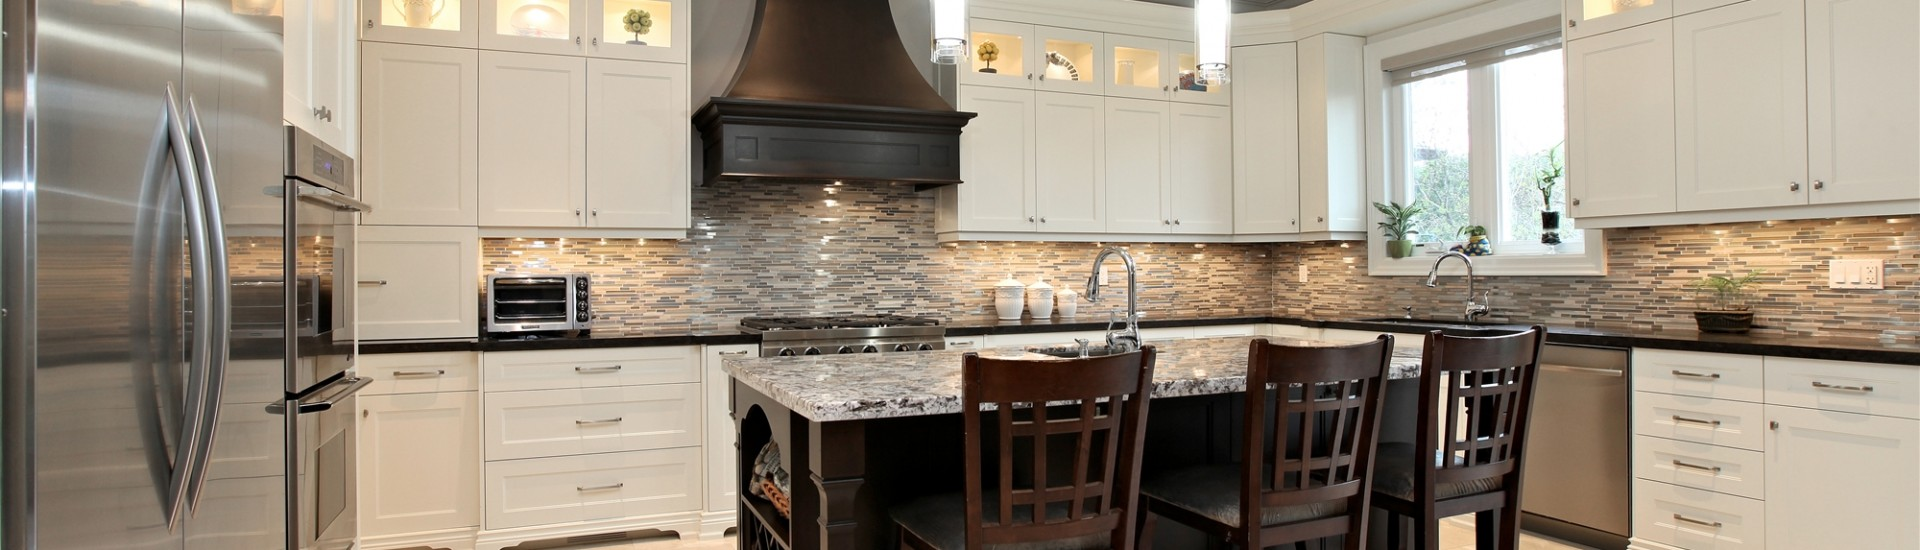 Toronto kitchen california kitchens and baths for Kitchen cabinets toronto